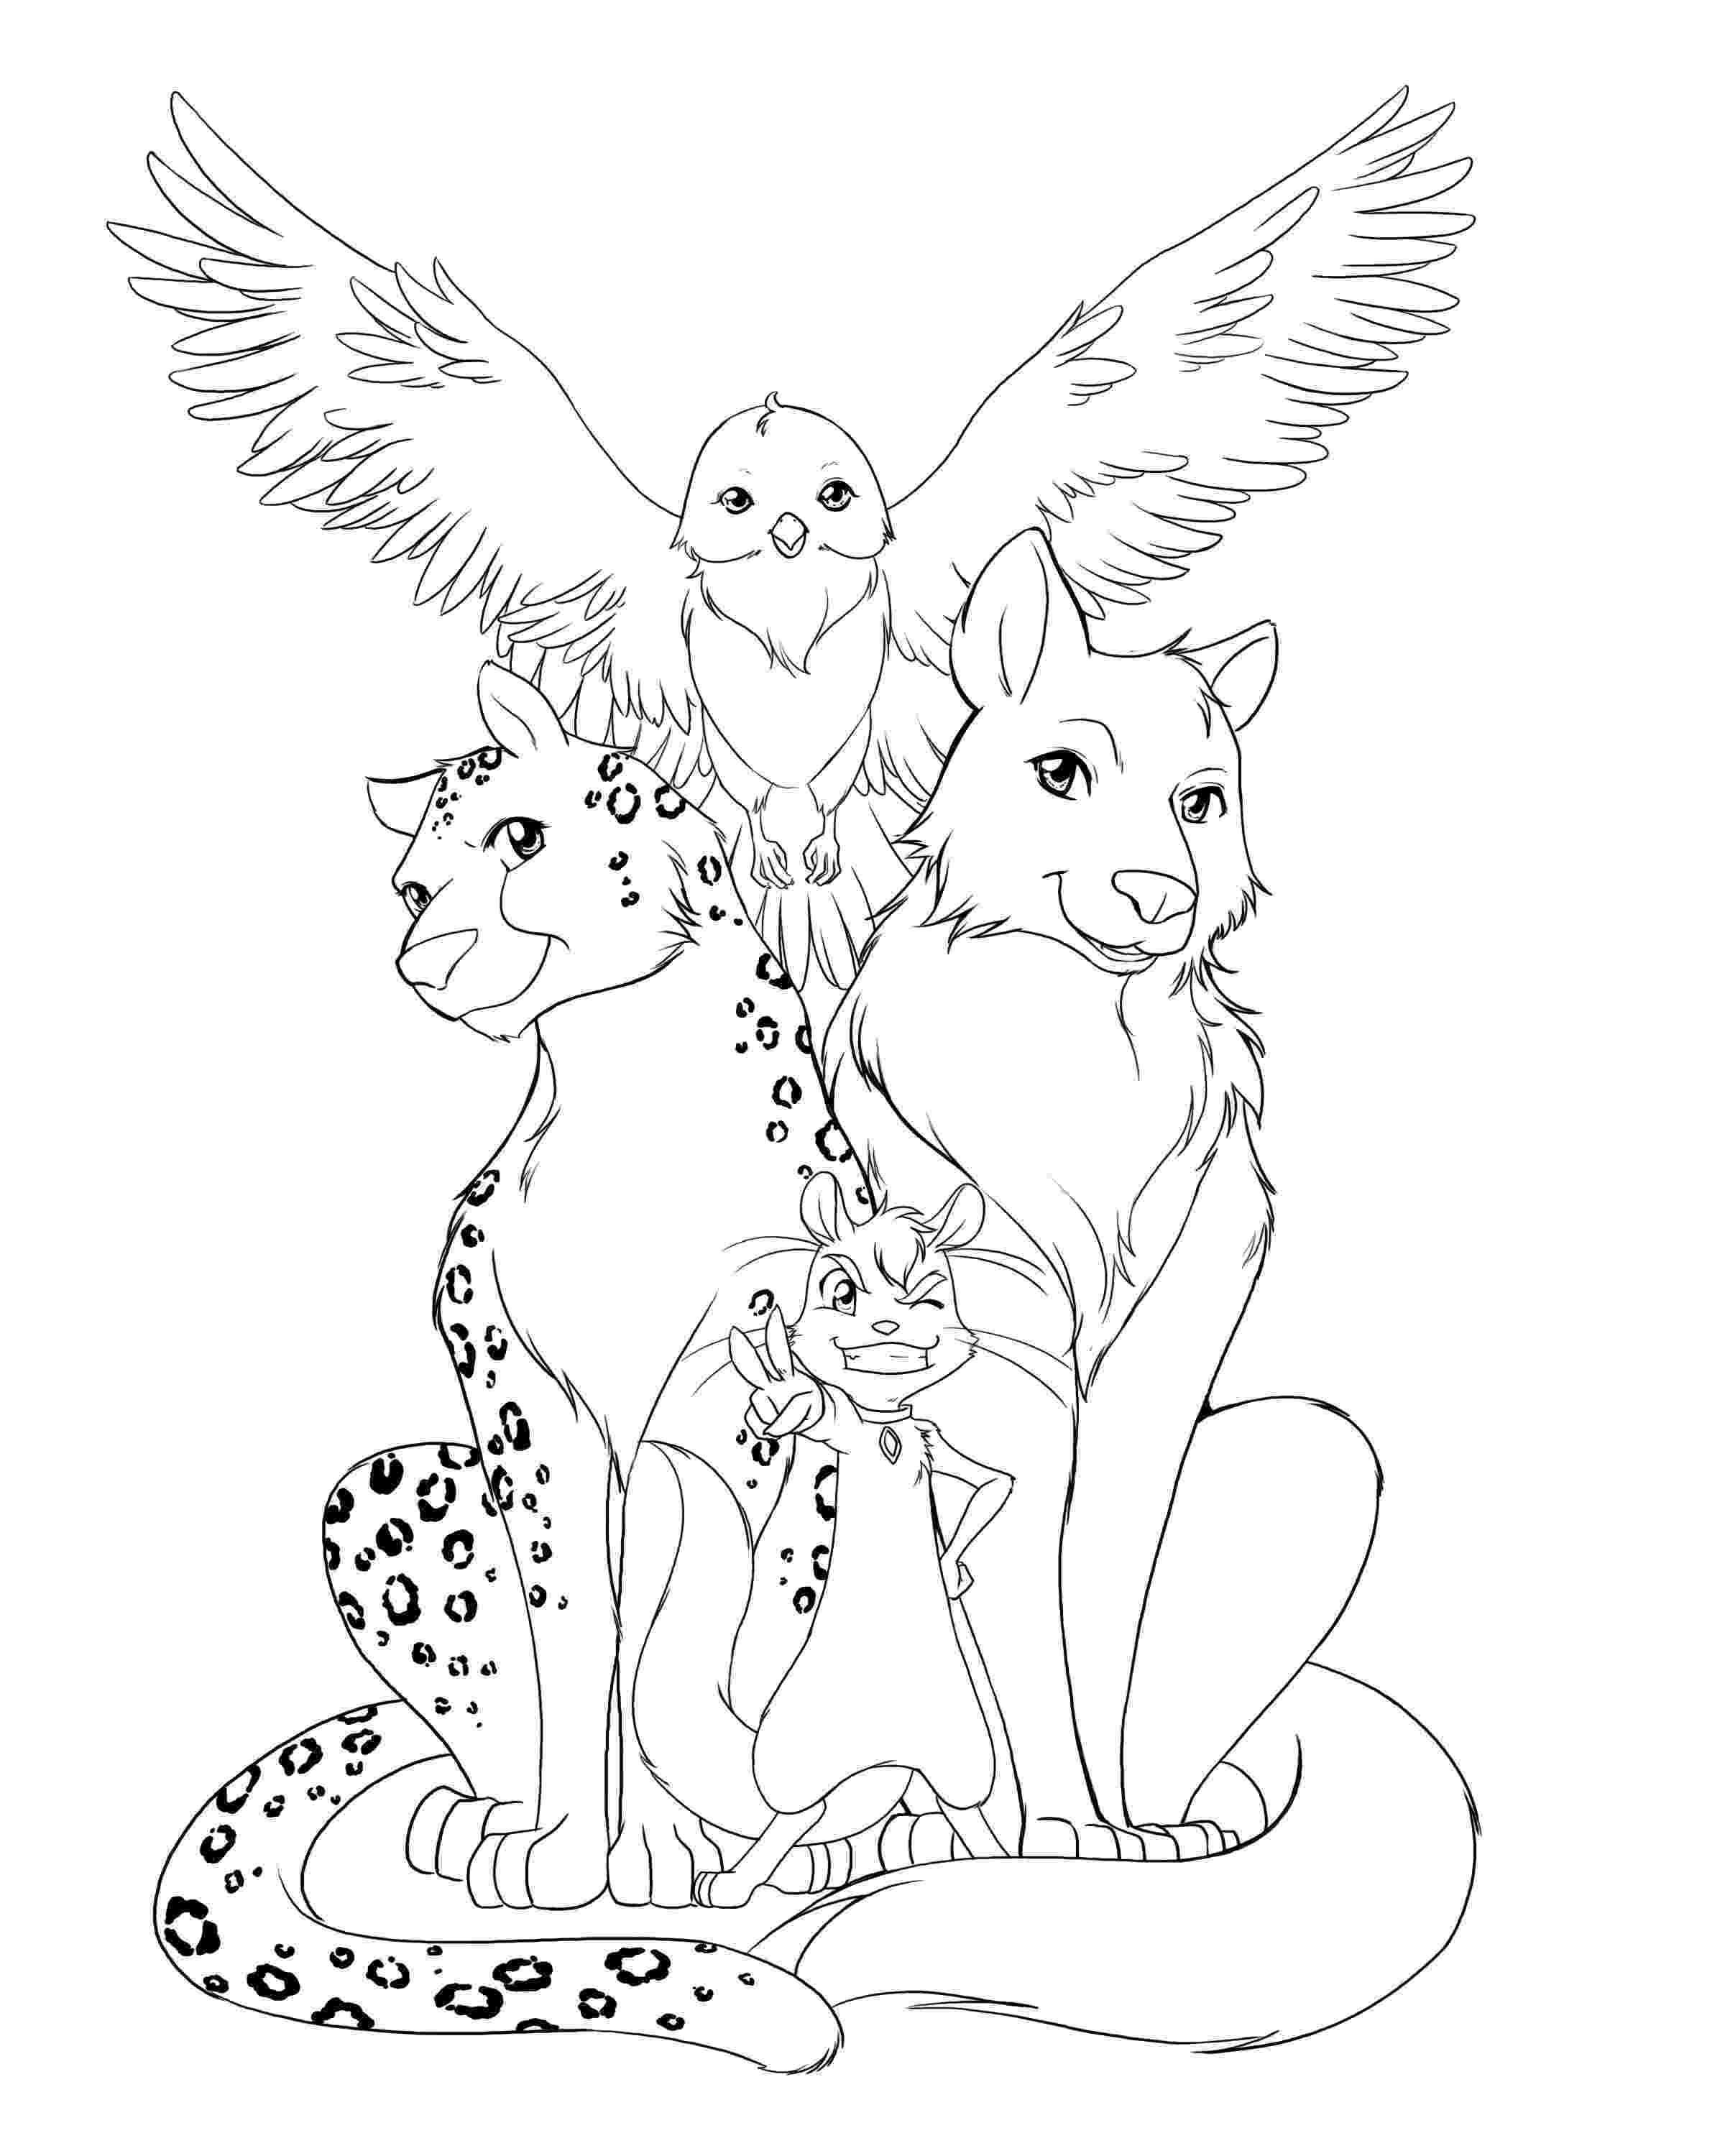 printable animal colouring books printable coloring pages for adults 15 free designs animal printable colouring books